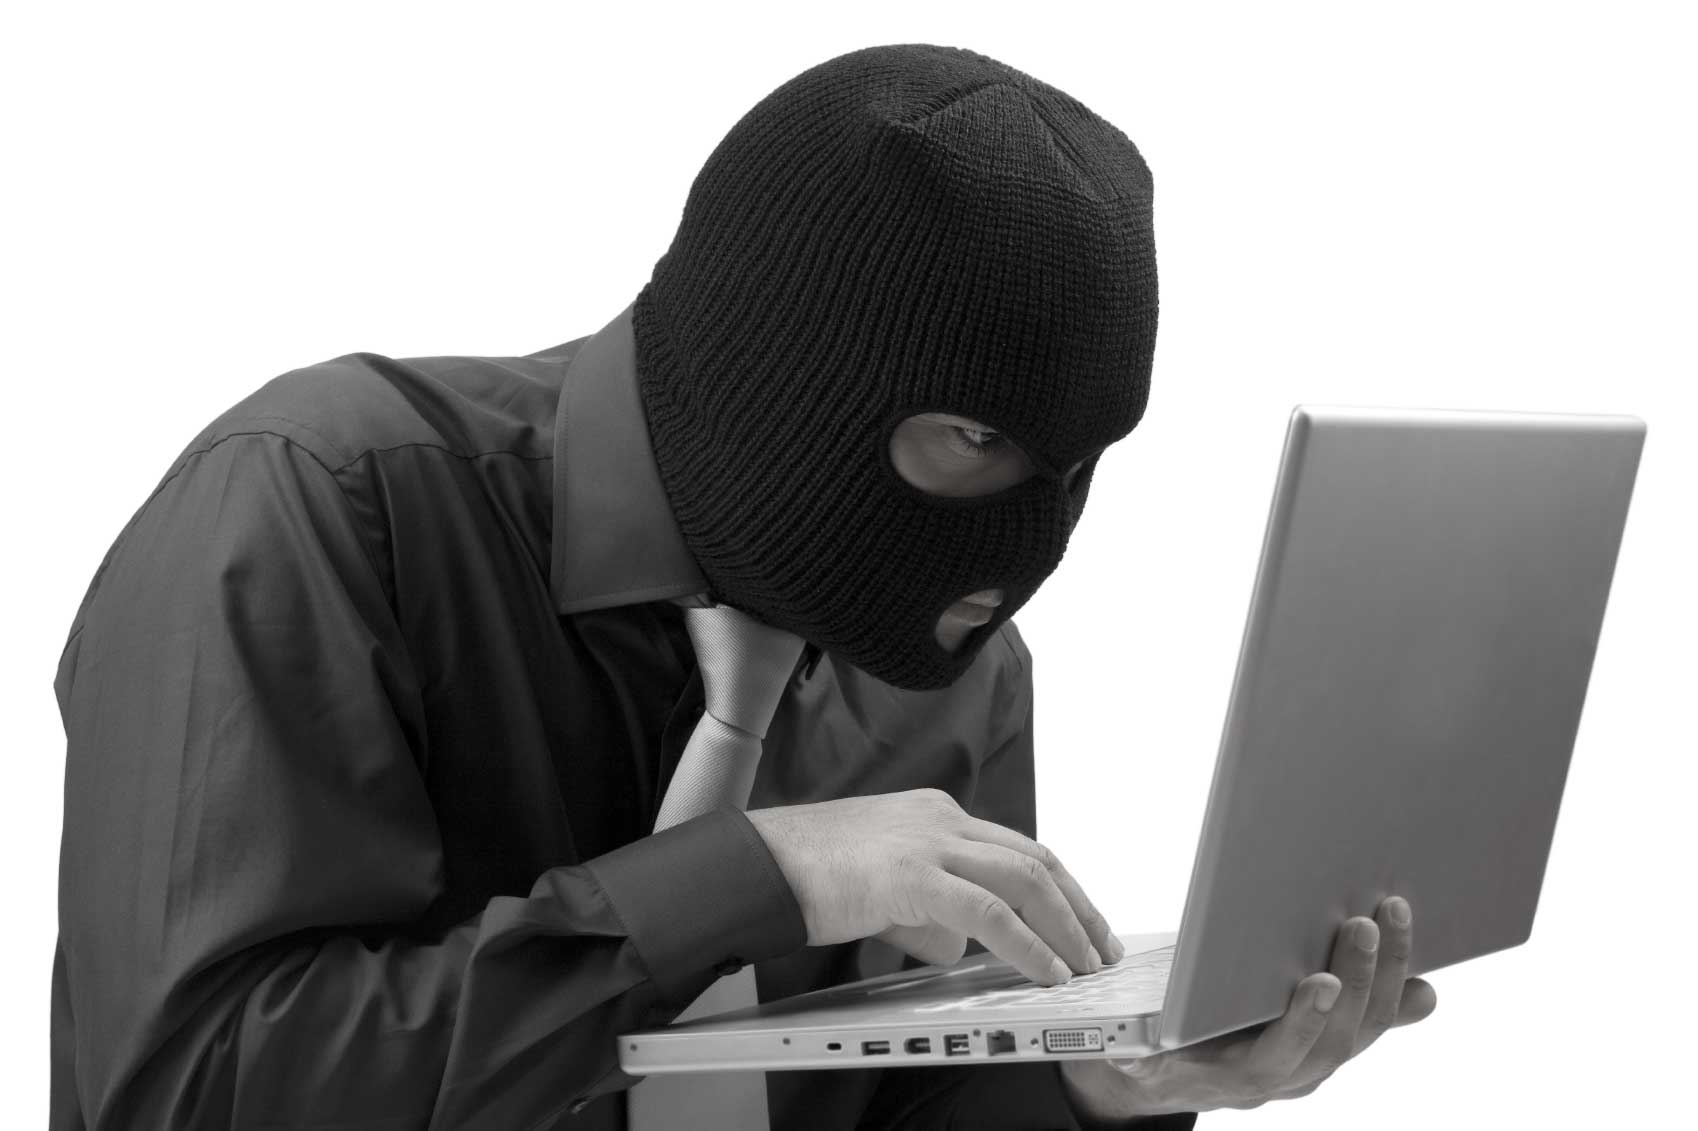 Internet Security & Identity Theft Protection